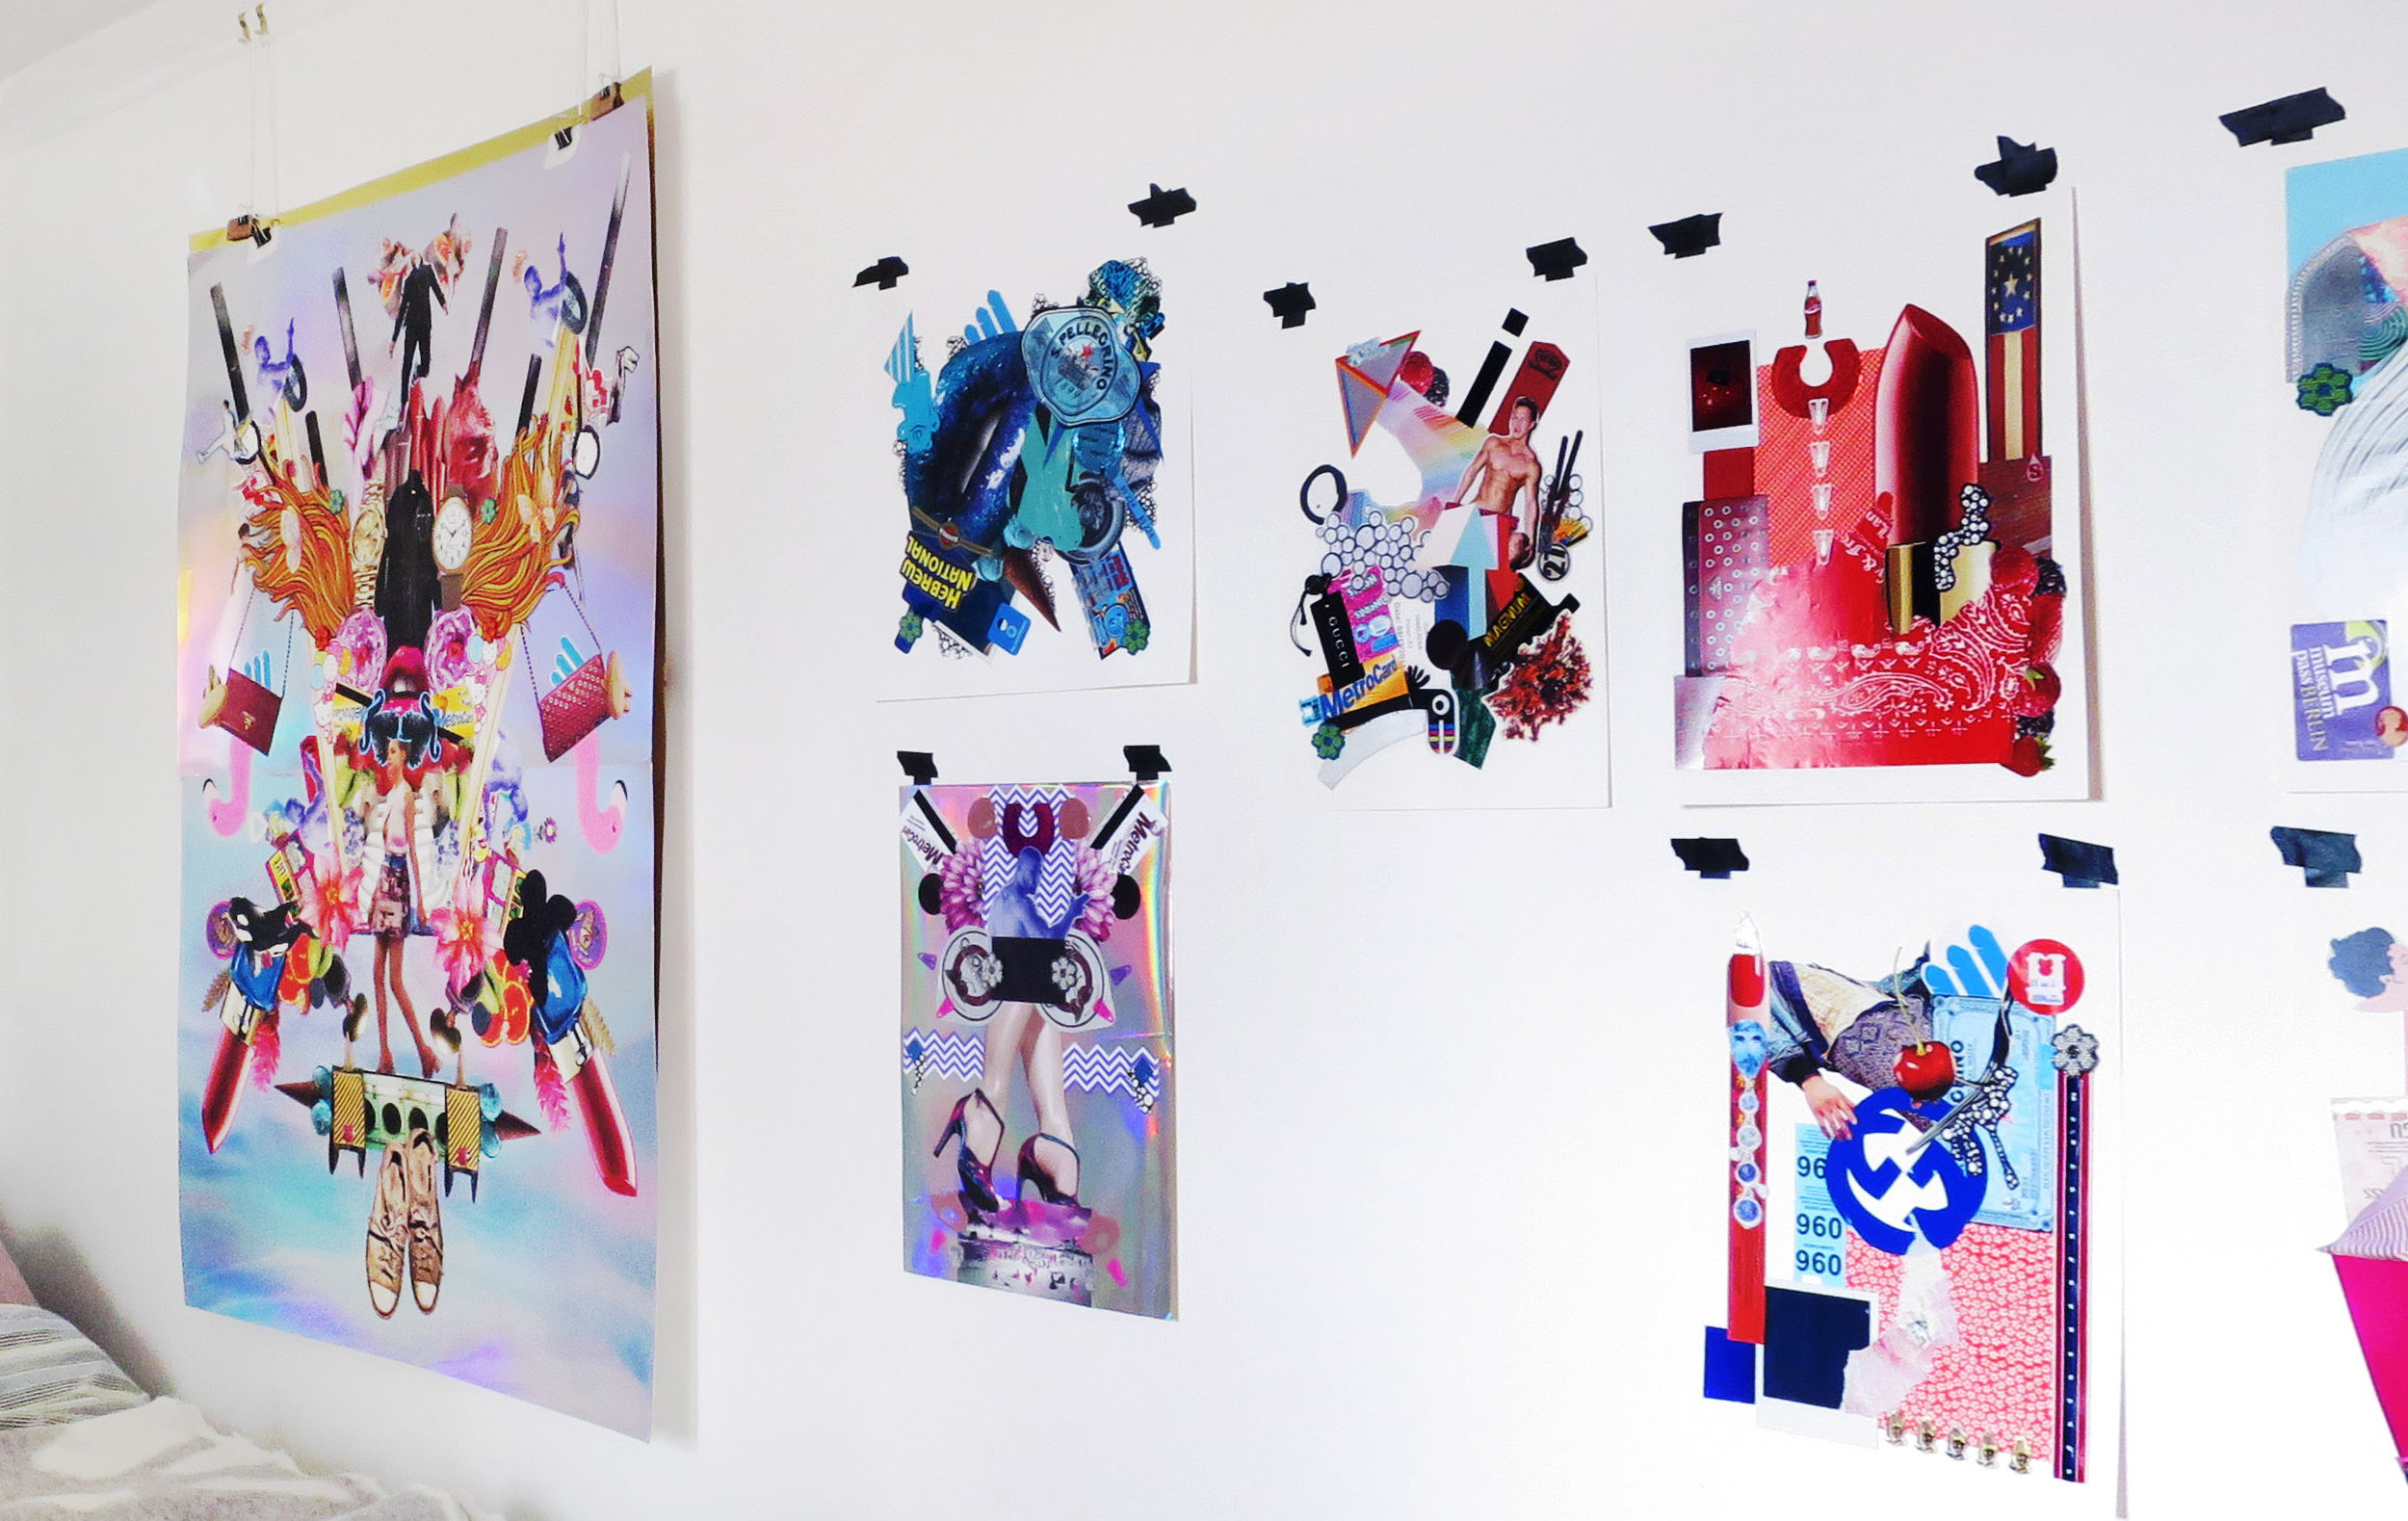 Completed works adorn the walls of Hinojosa's studio.